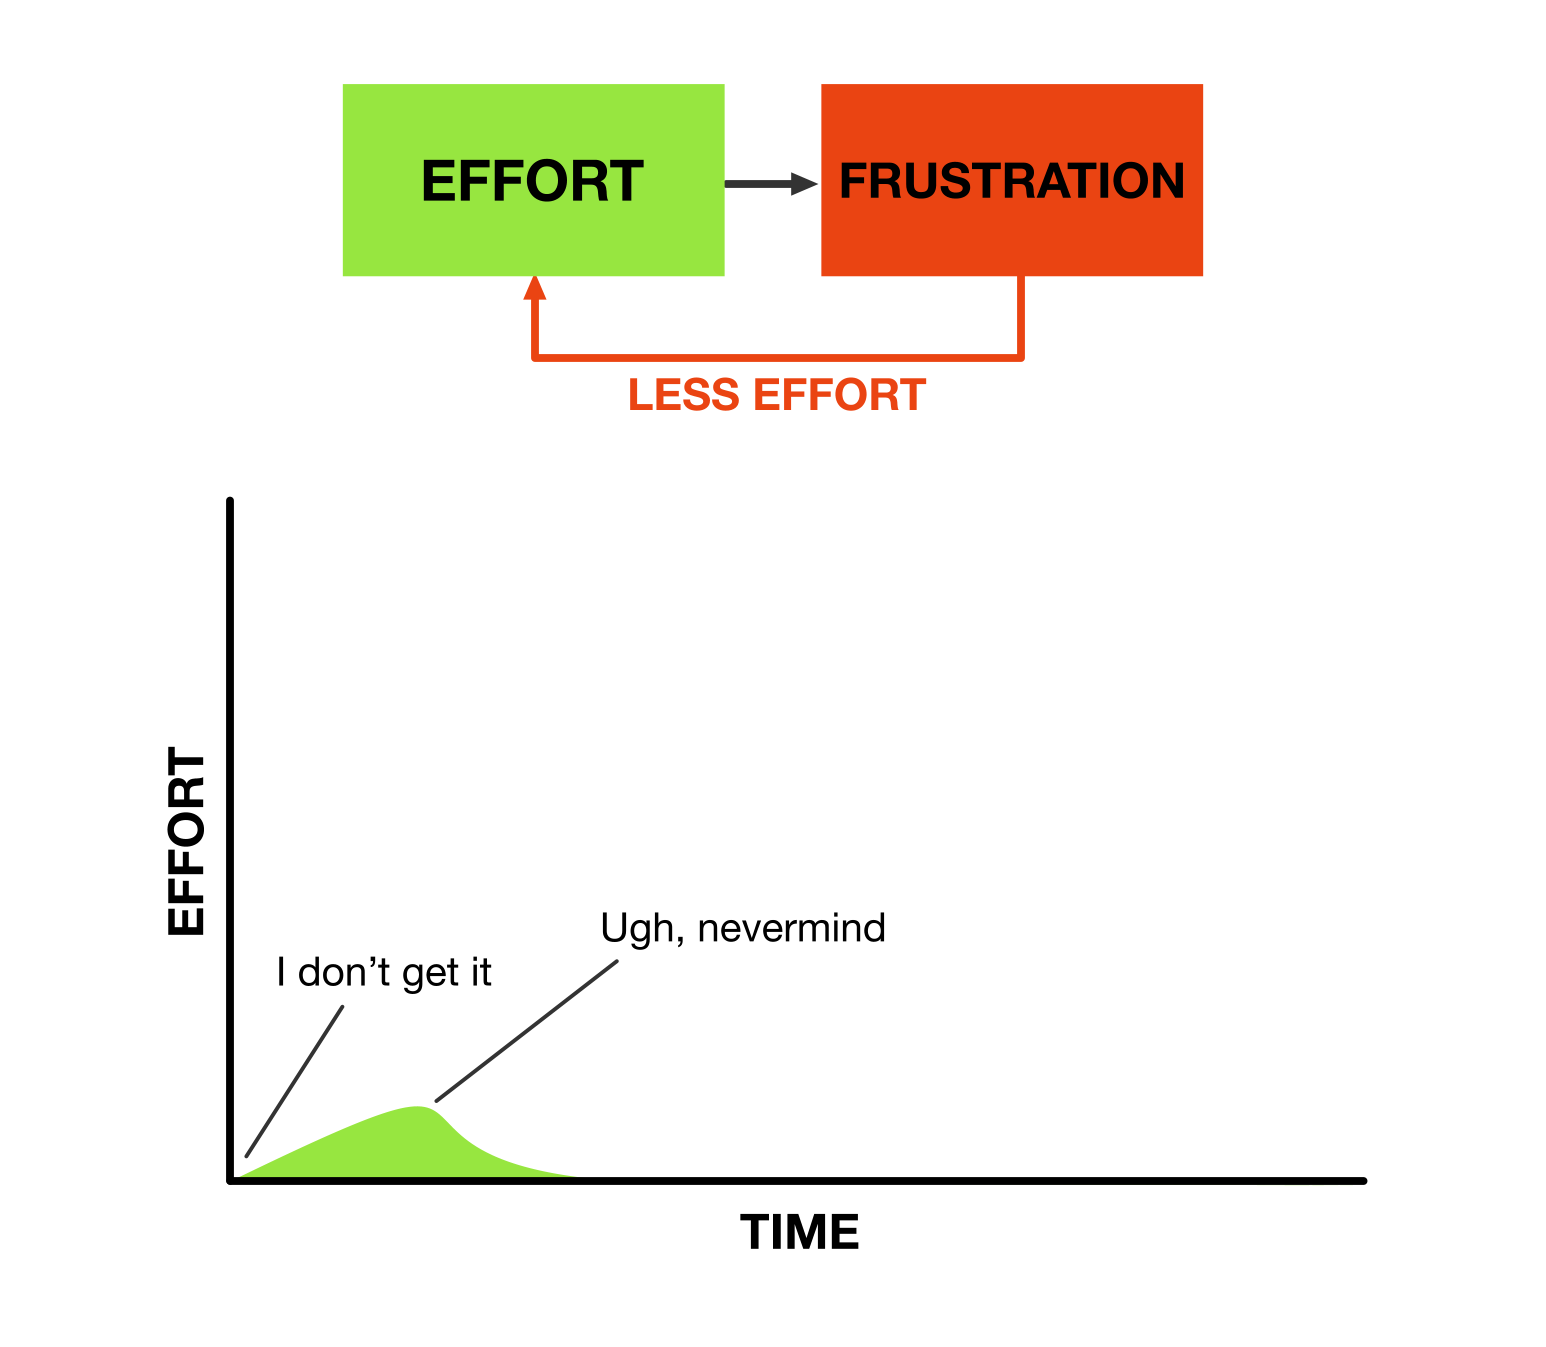 How frustration kills effort